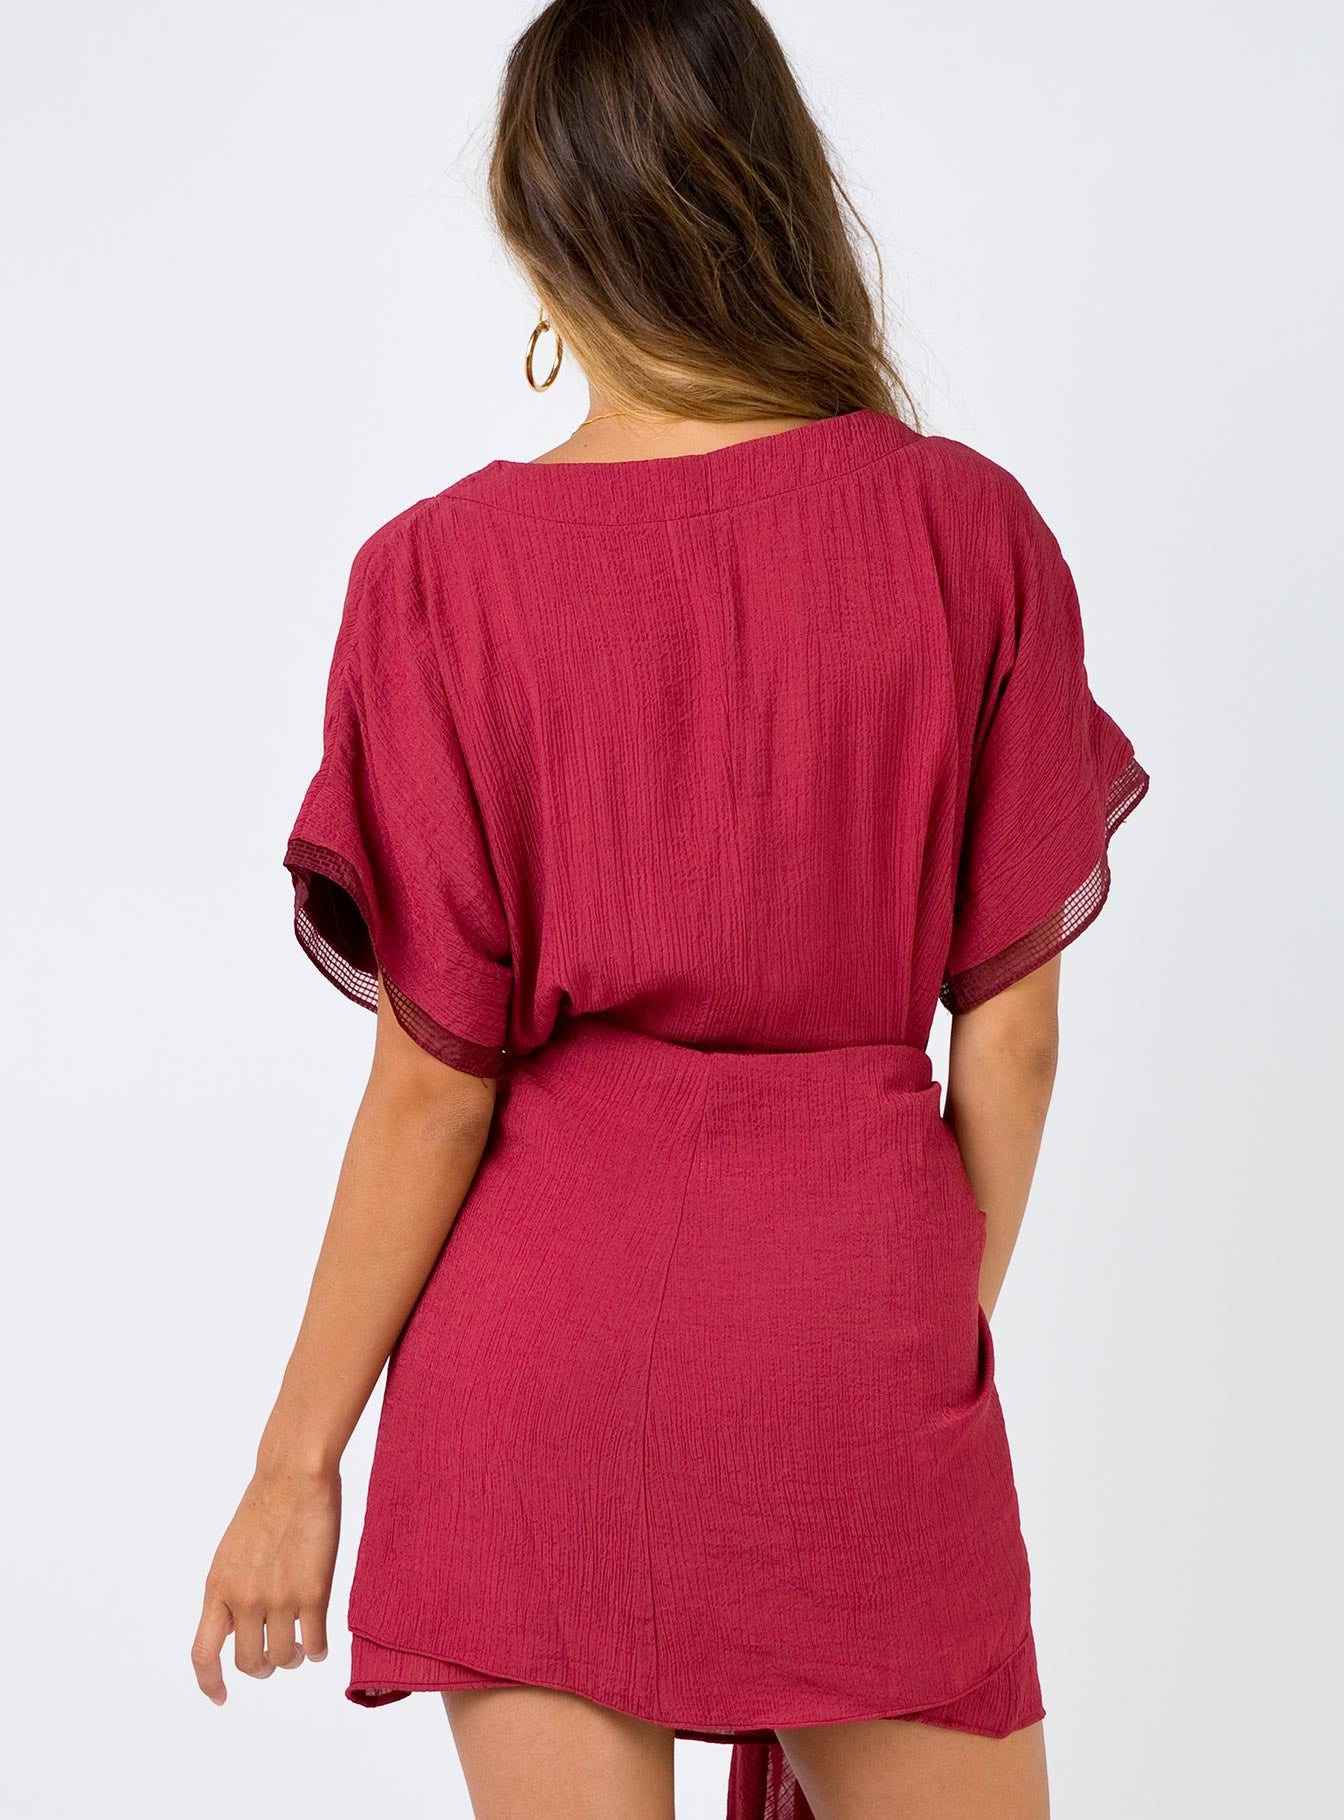 Shimmers Wrap Dress Burgundy